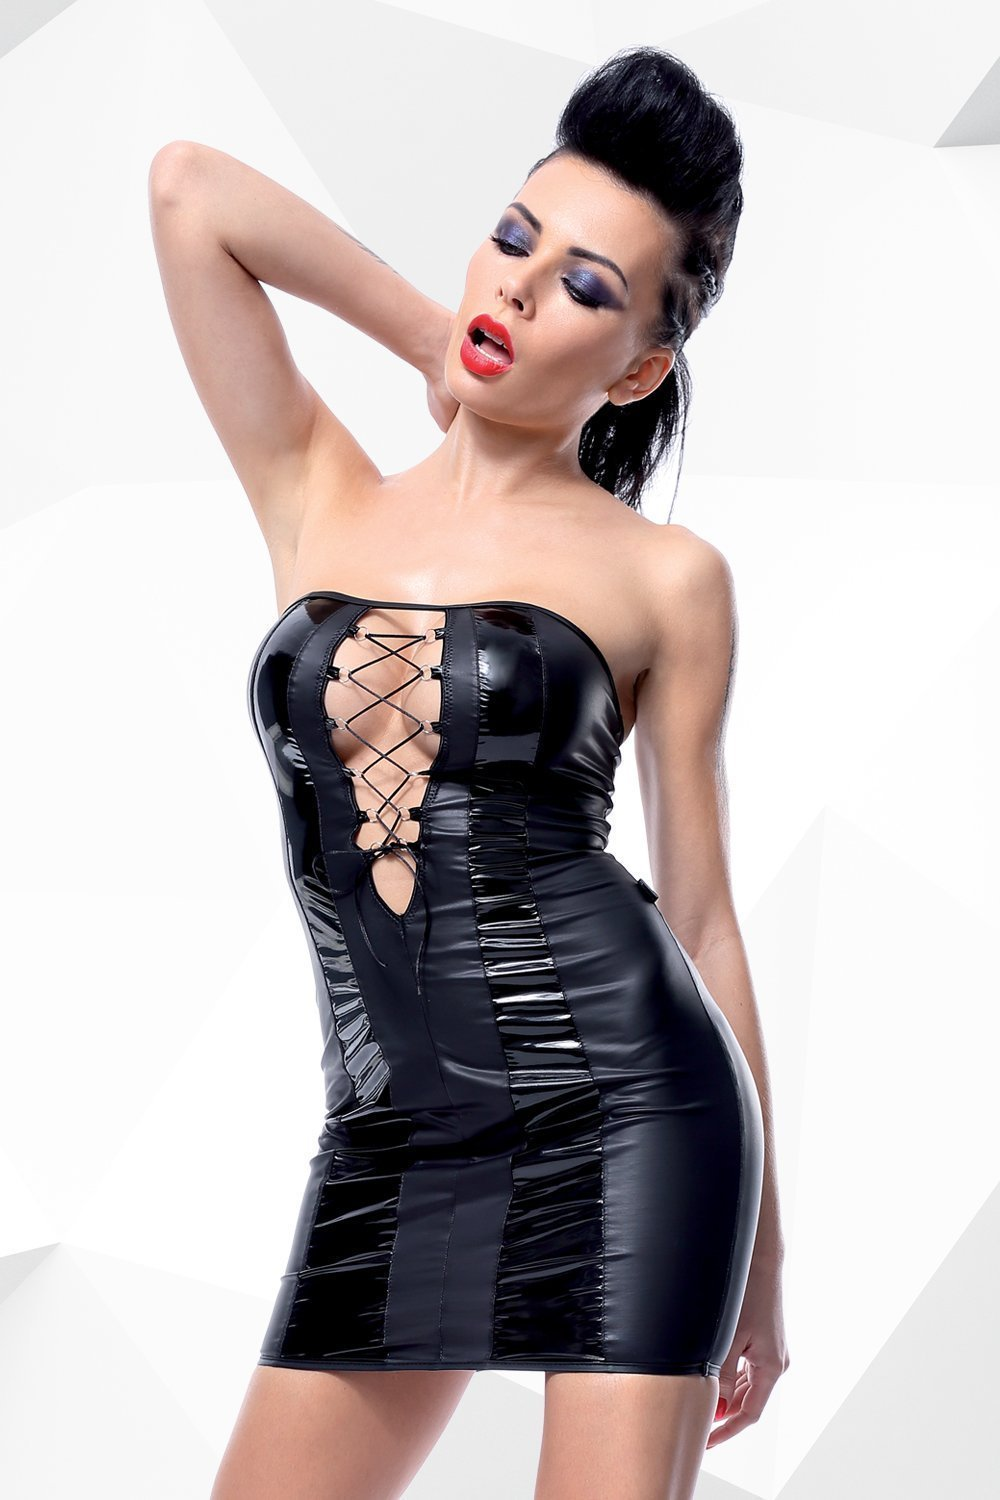 demoniq Dress UK 8 / Black Irma by Demoniq Hard Candy Collection